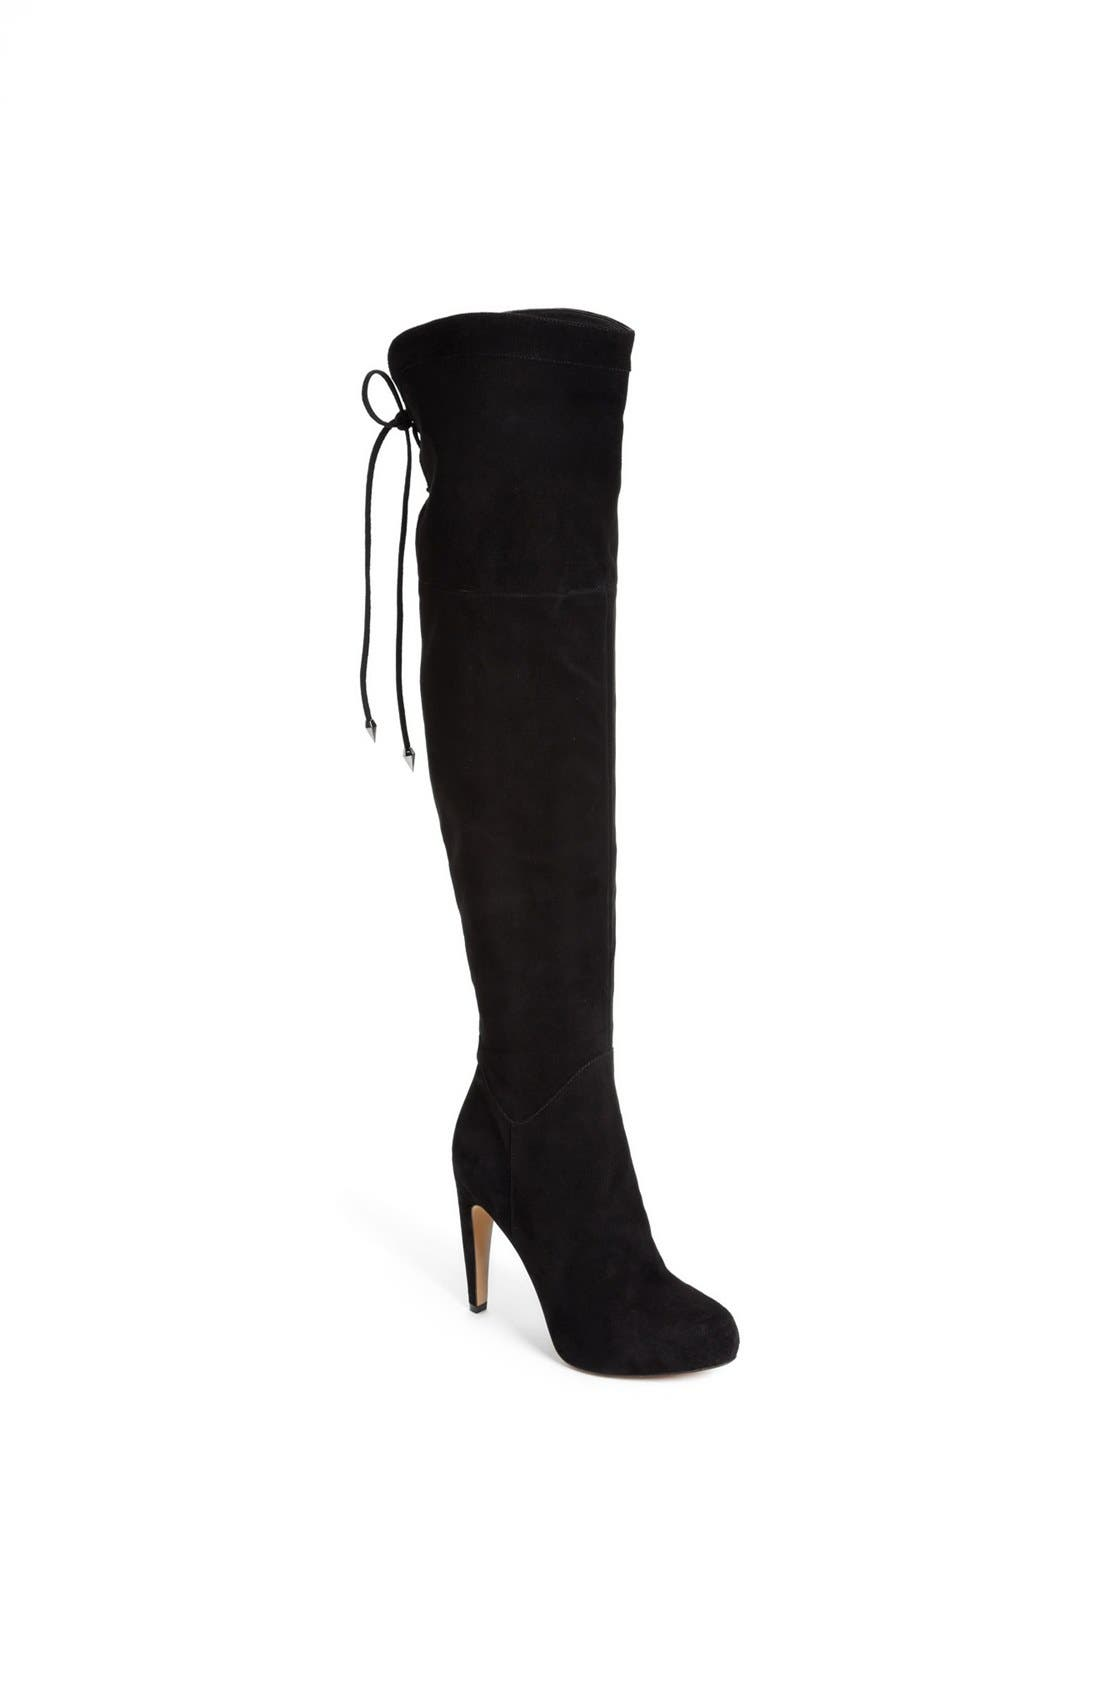 'Kayla' Over the Knee Boot,                             Main thumbnail 1, color,                             001